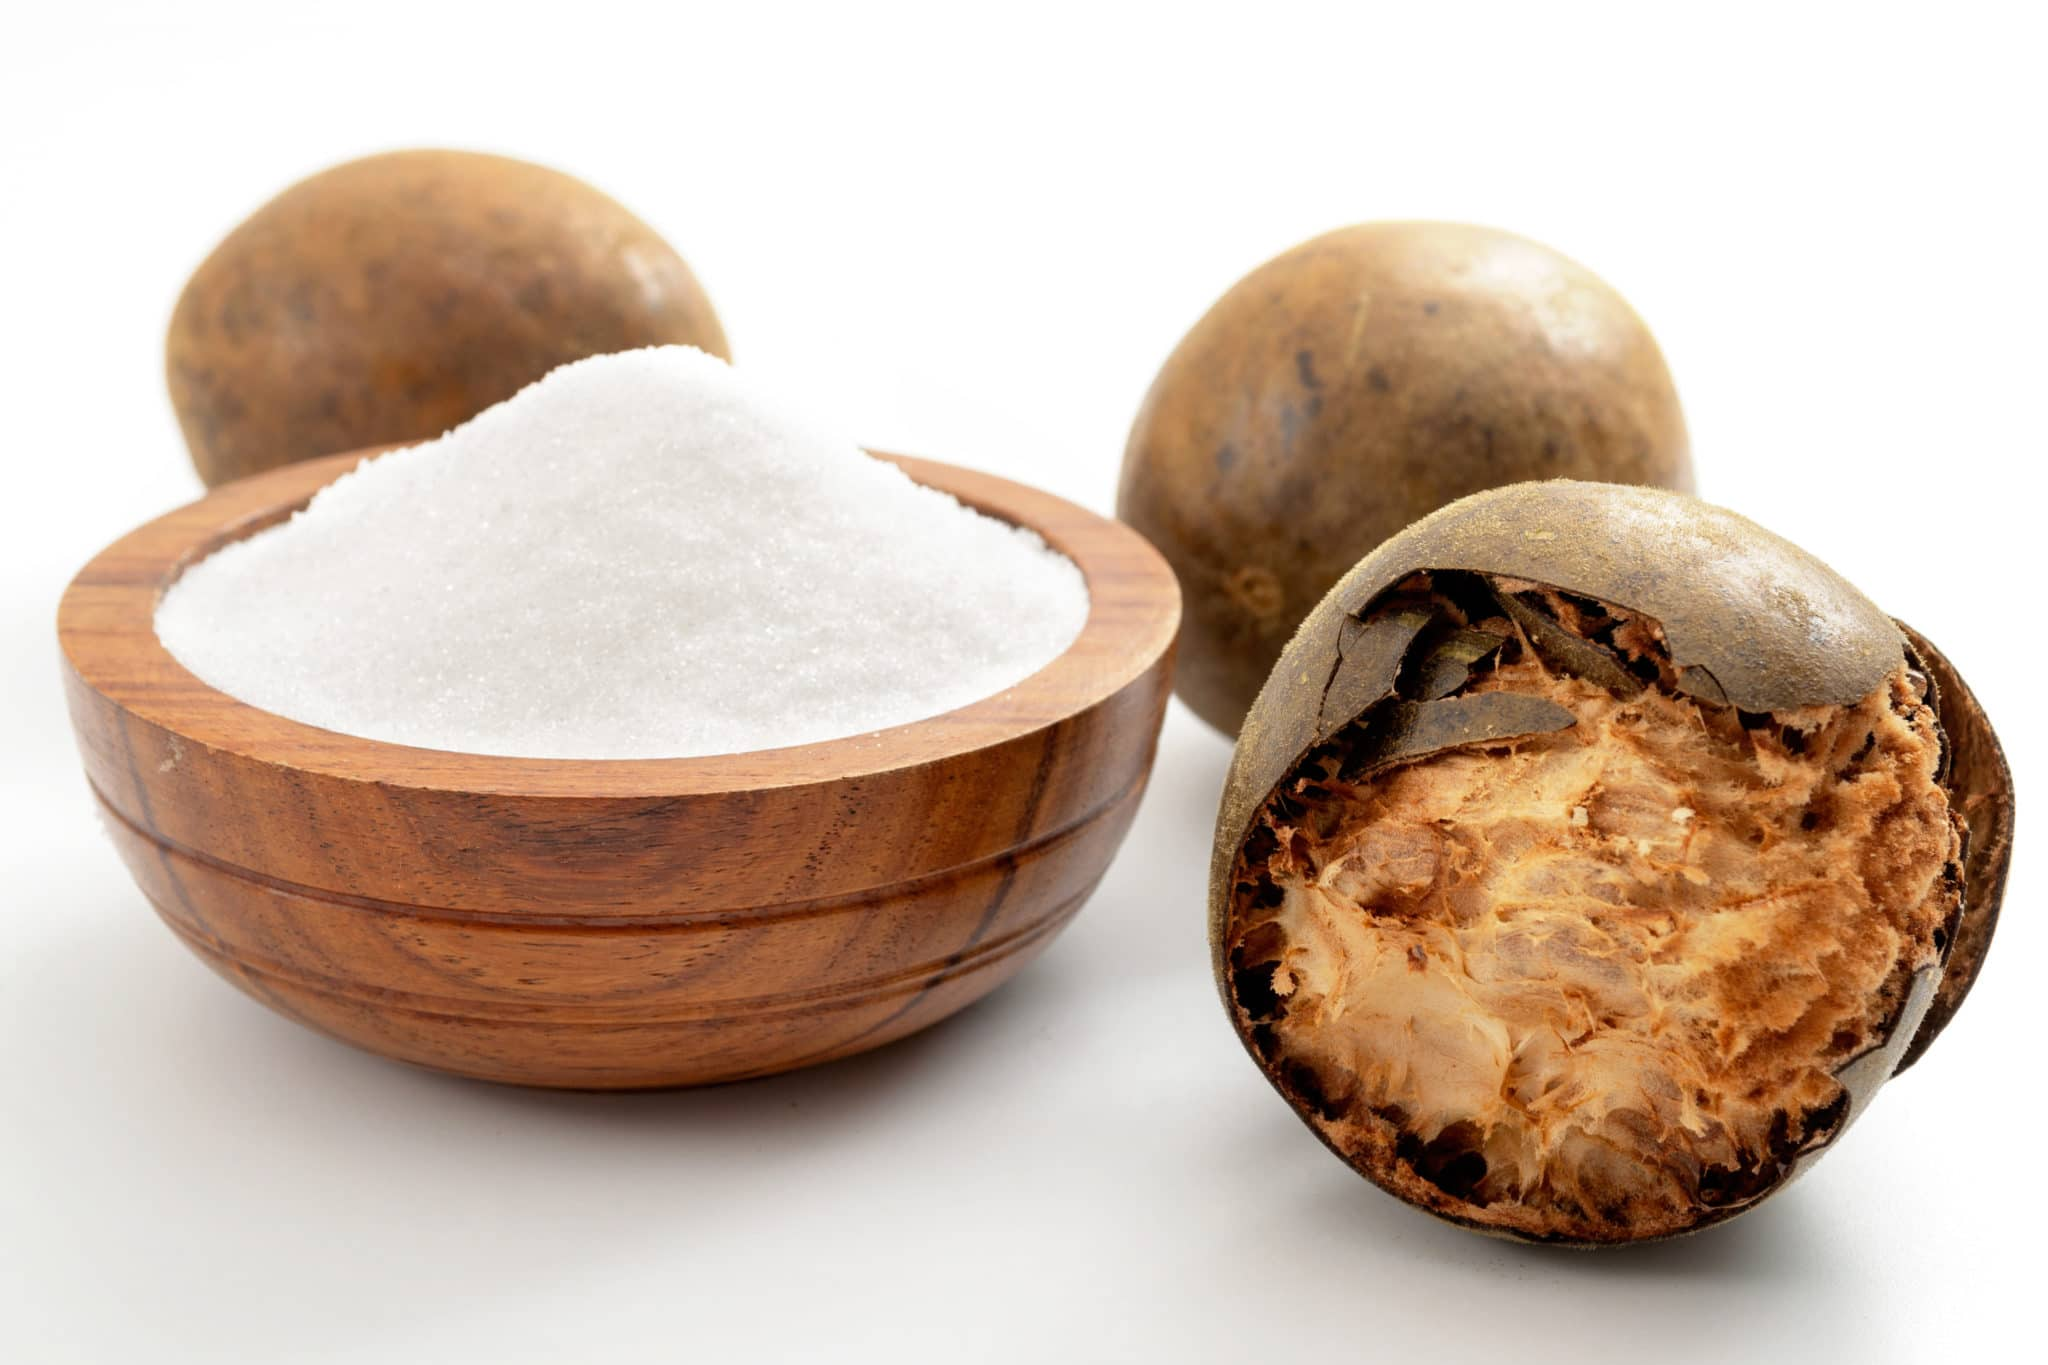 A wooden bowl filled with white granulated monk fruit sweetener, with an open monk fruit sitting beside the bowl